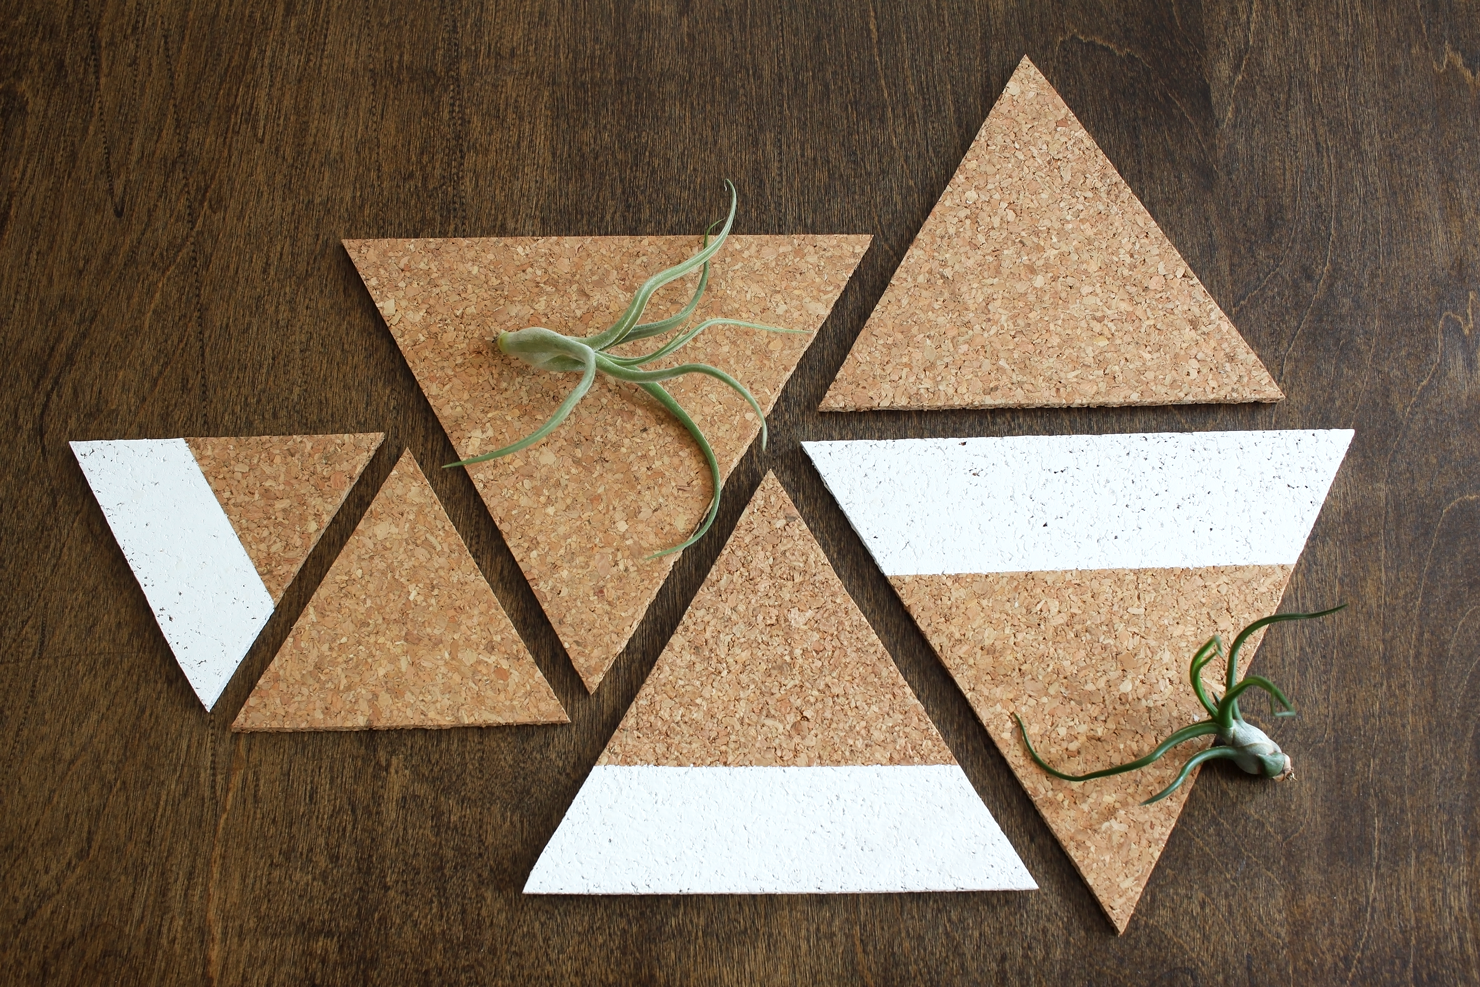 DIY Cork Triangle Trivet